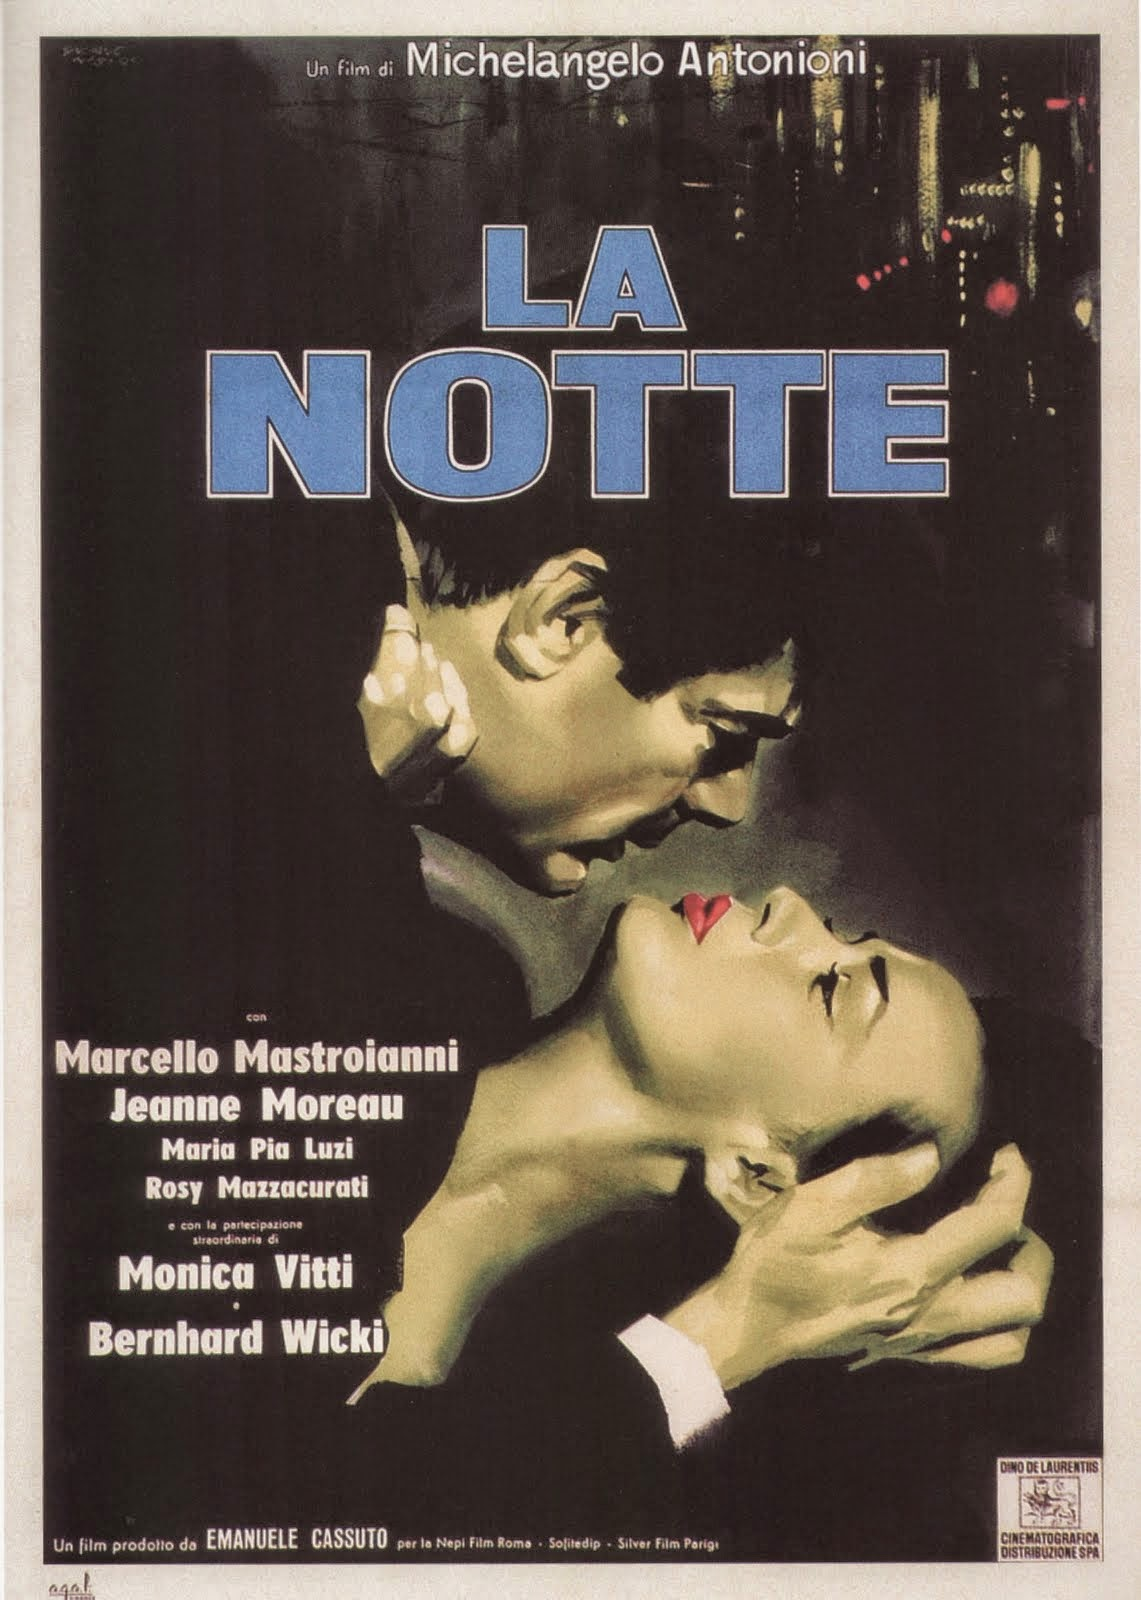 http://jazzsoundtrack.blogspot.it/2014/11/2-great-jazz-la-notte-di-giorgio-gaslini.html